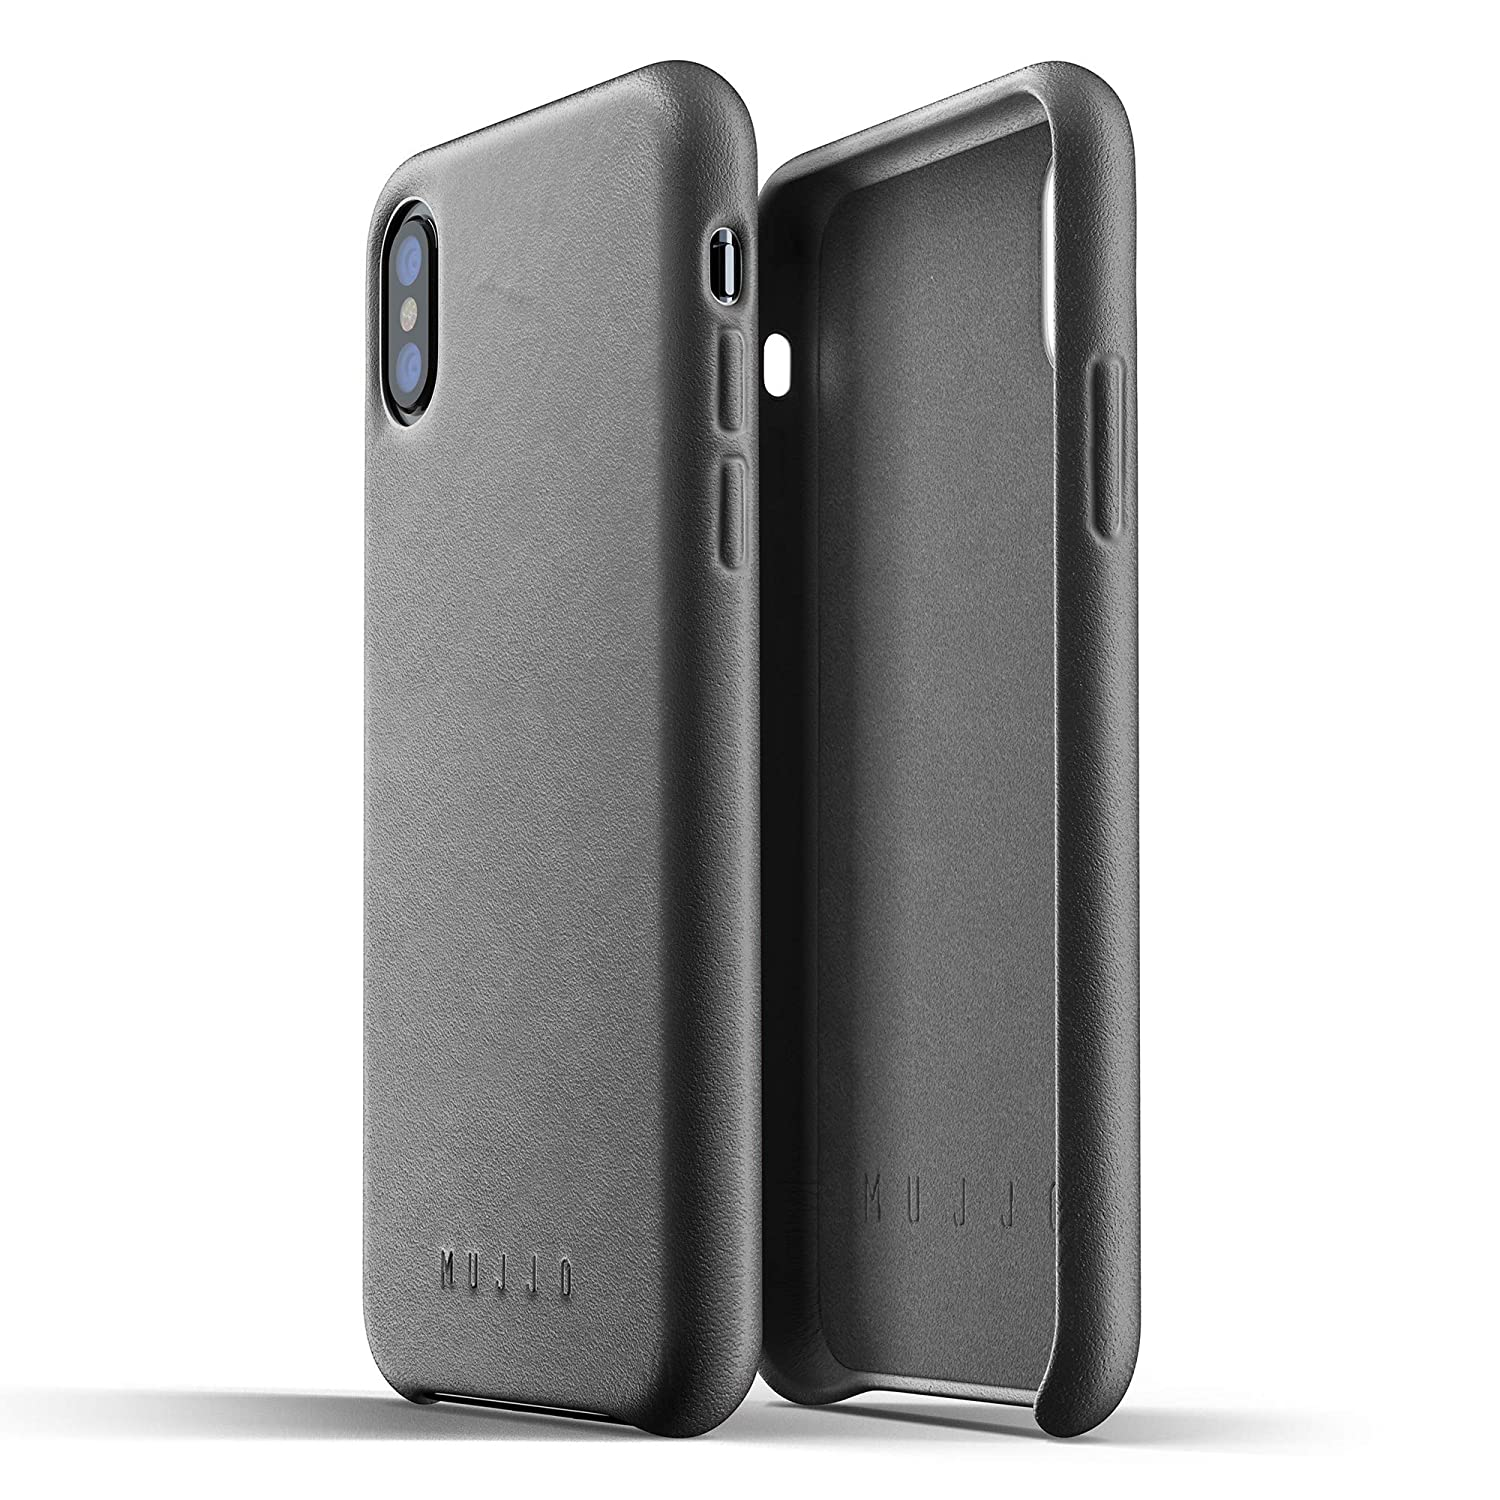 cheaper 0a65e 165a5 Mujjo Full Leather Case for iPhone Xs, iPhone X | Covered Buttons, 1MM  Protective Screen Bezel, Japanese Suede Lining (Grey)